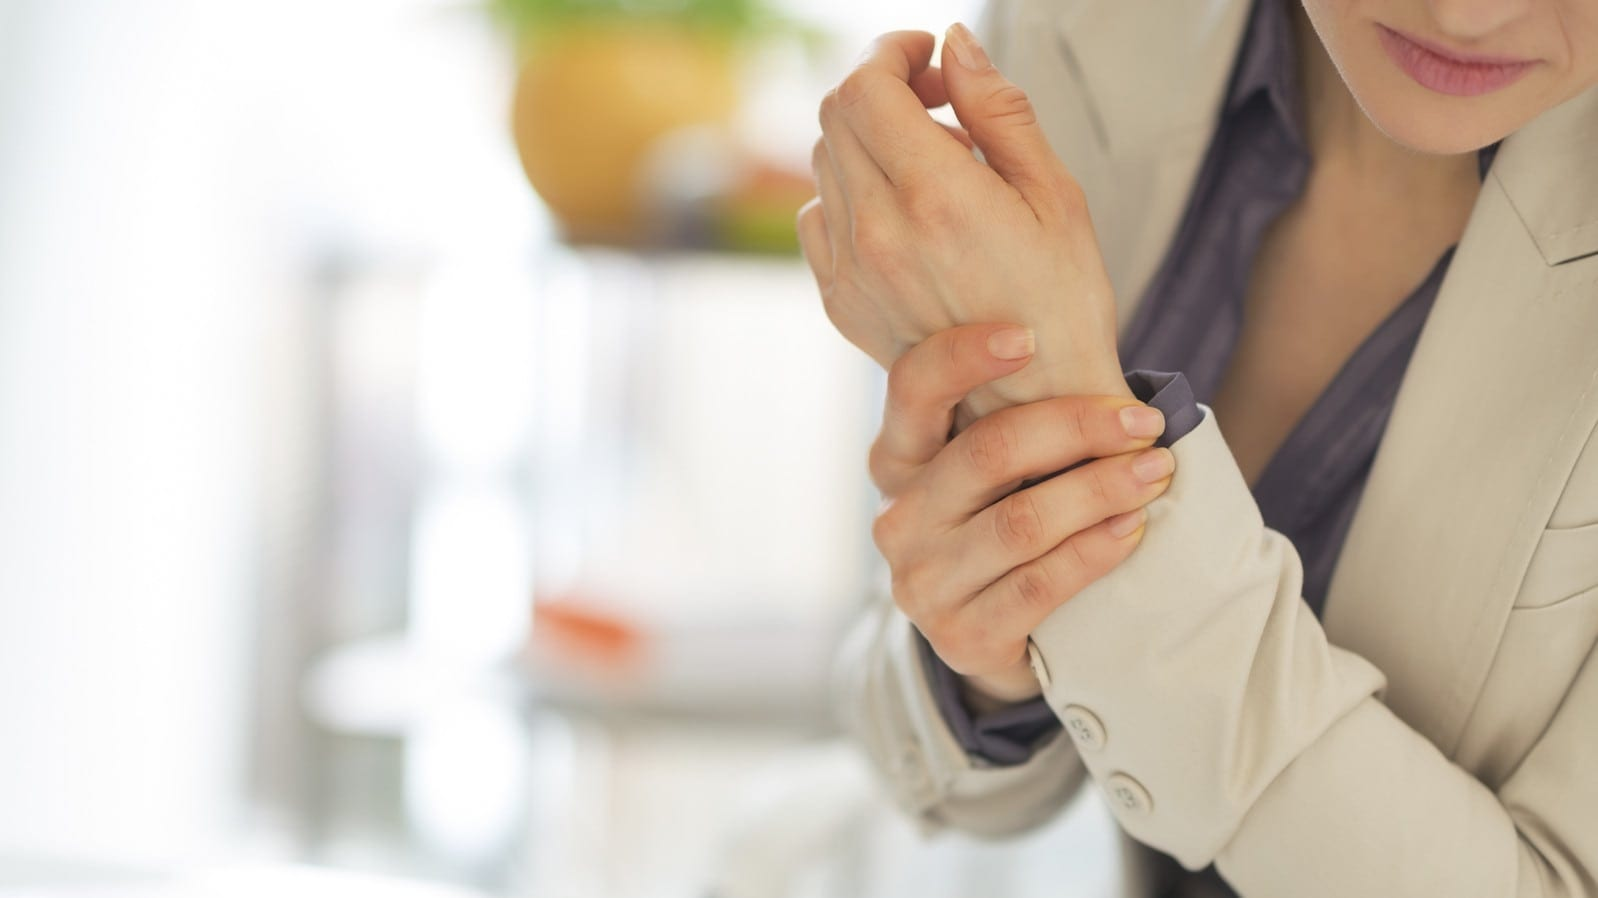 Professional Woman With A Wrist Injury Stock Photo